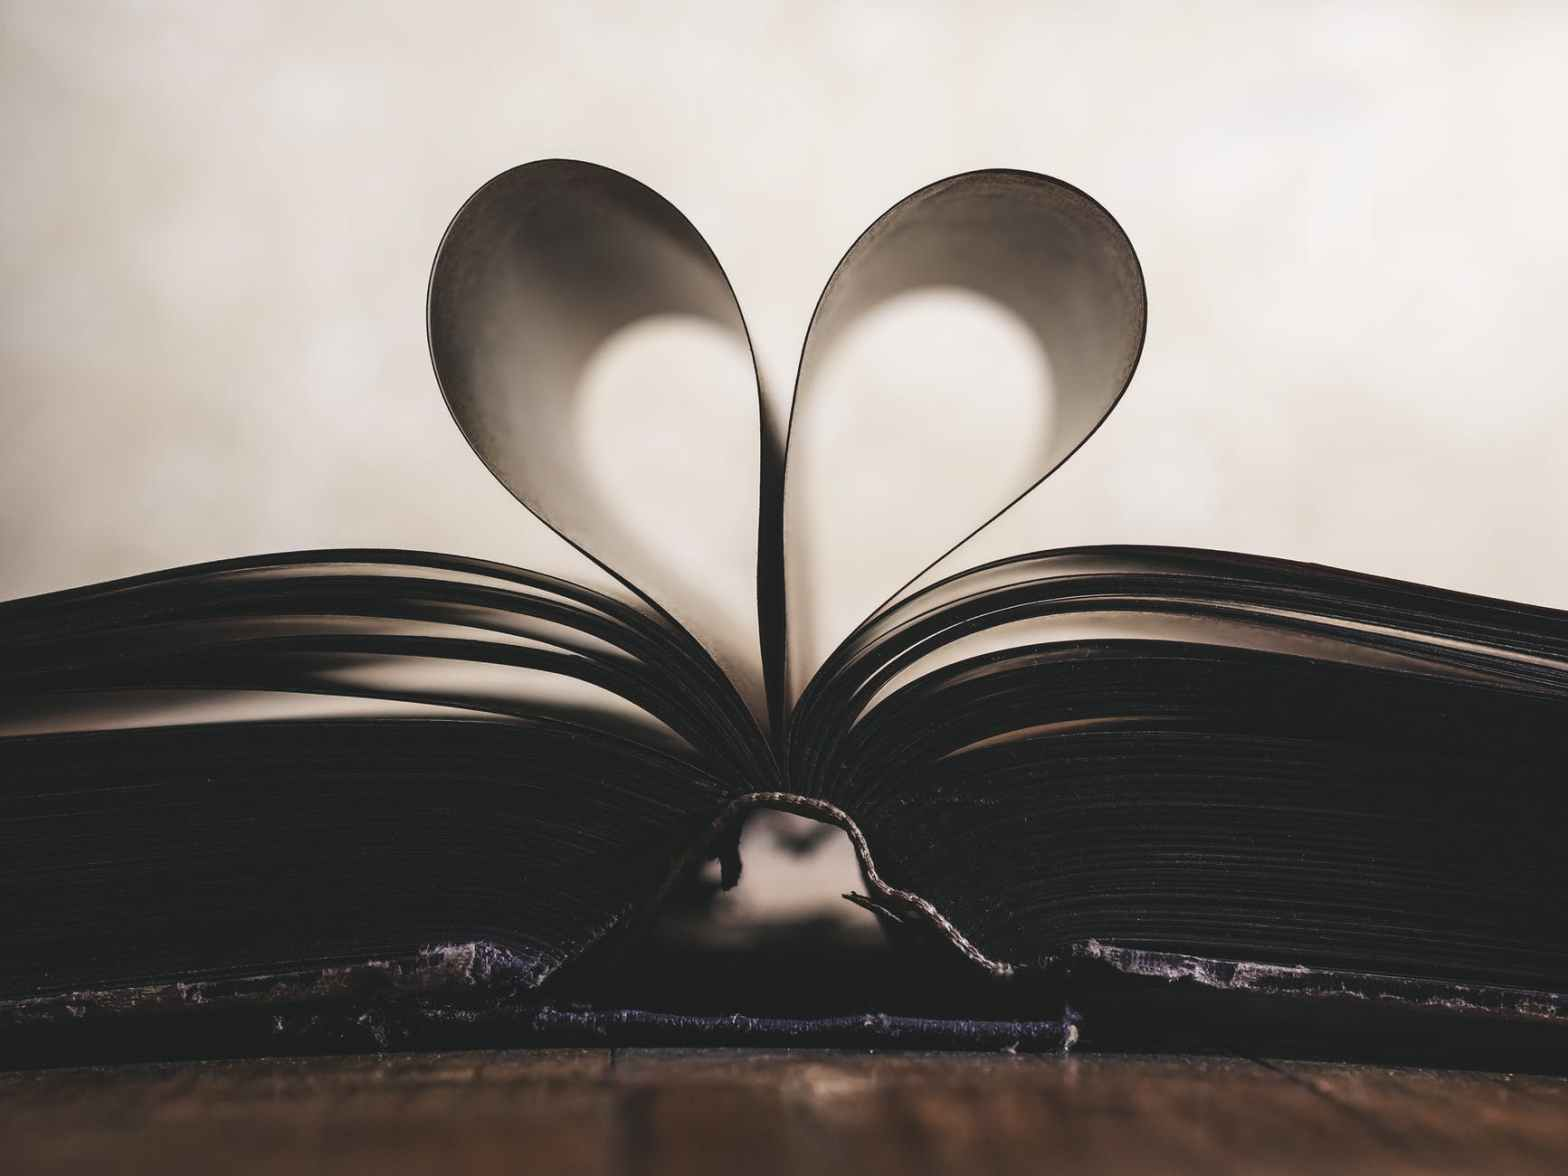 true love - an open book with pages made into a heart